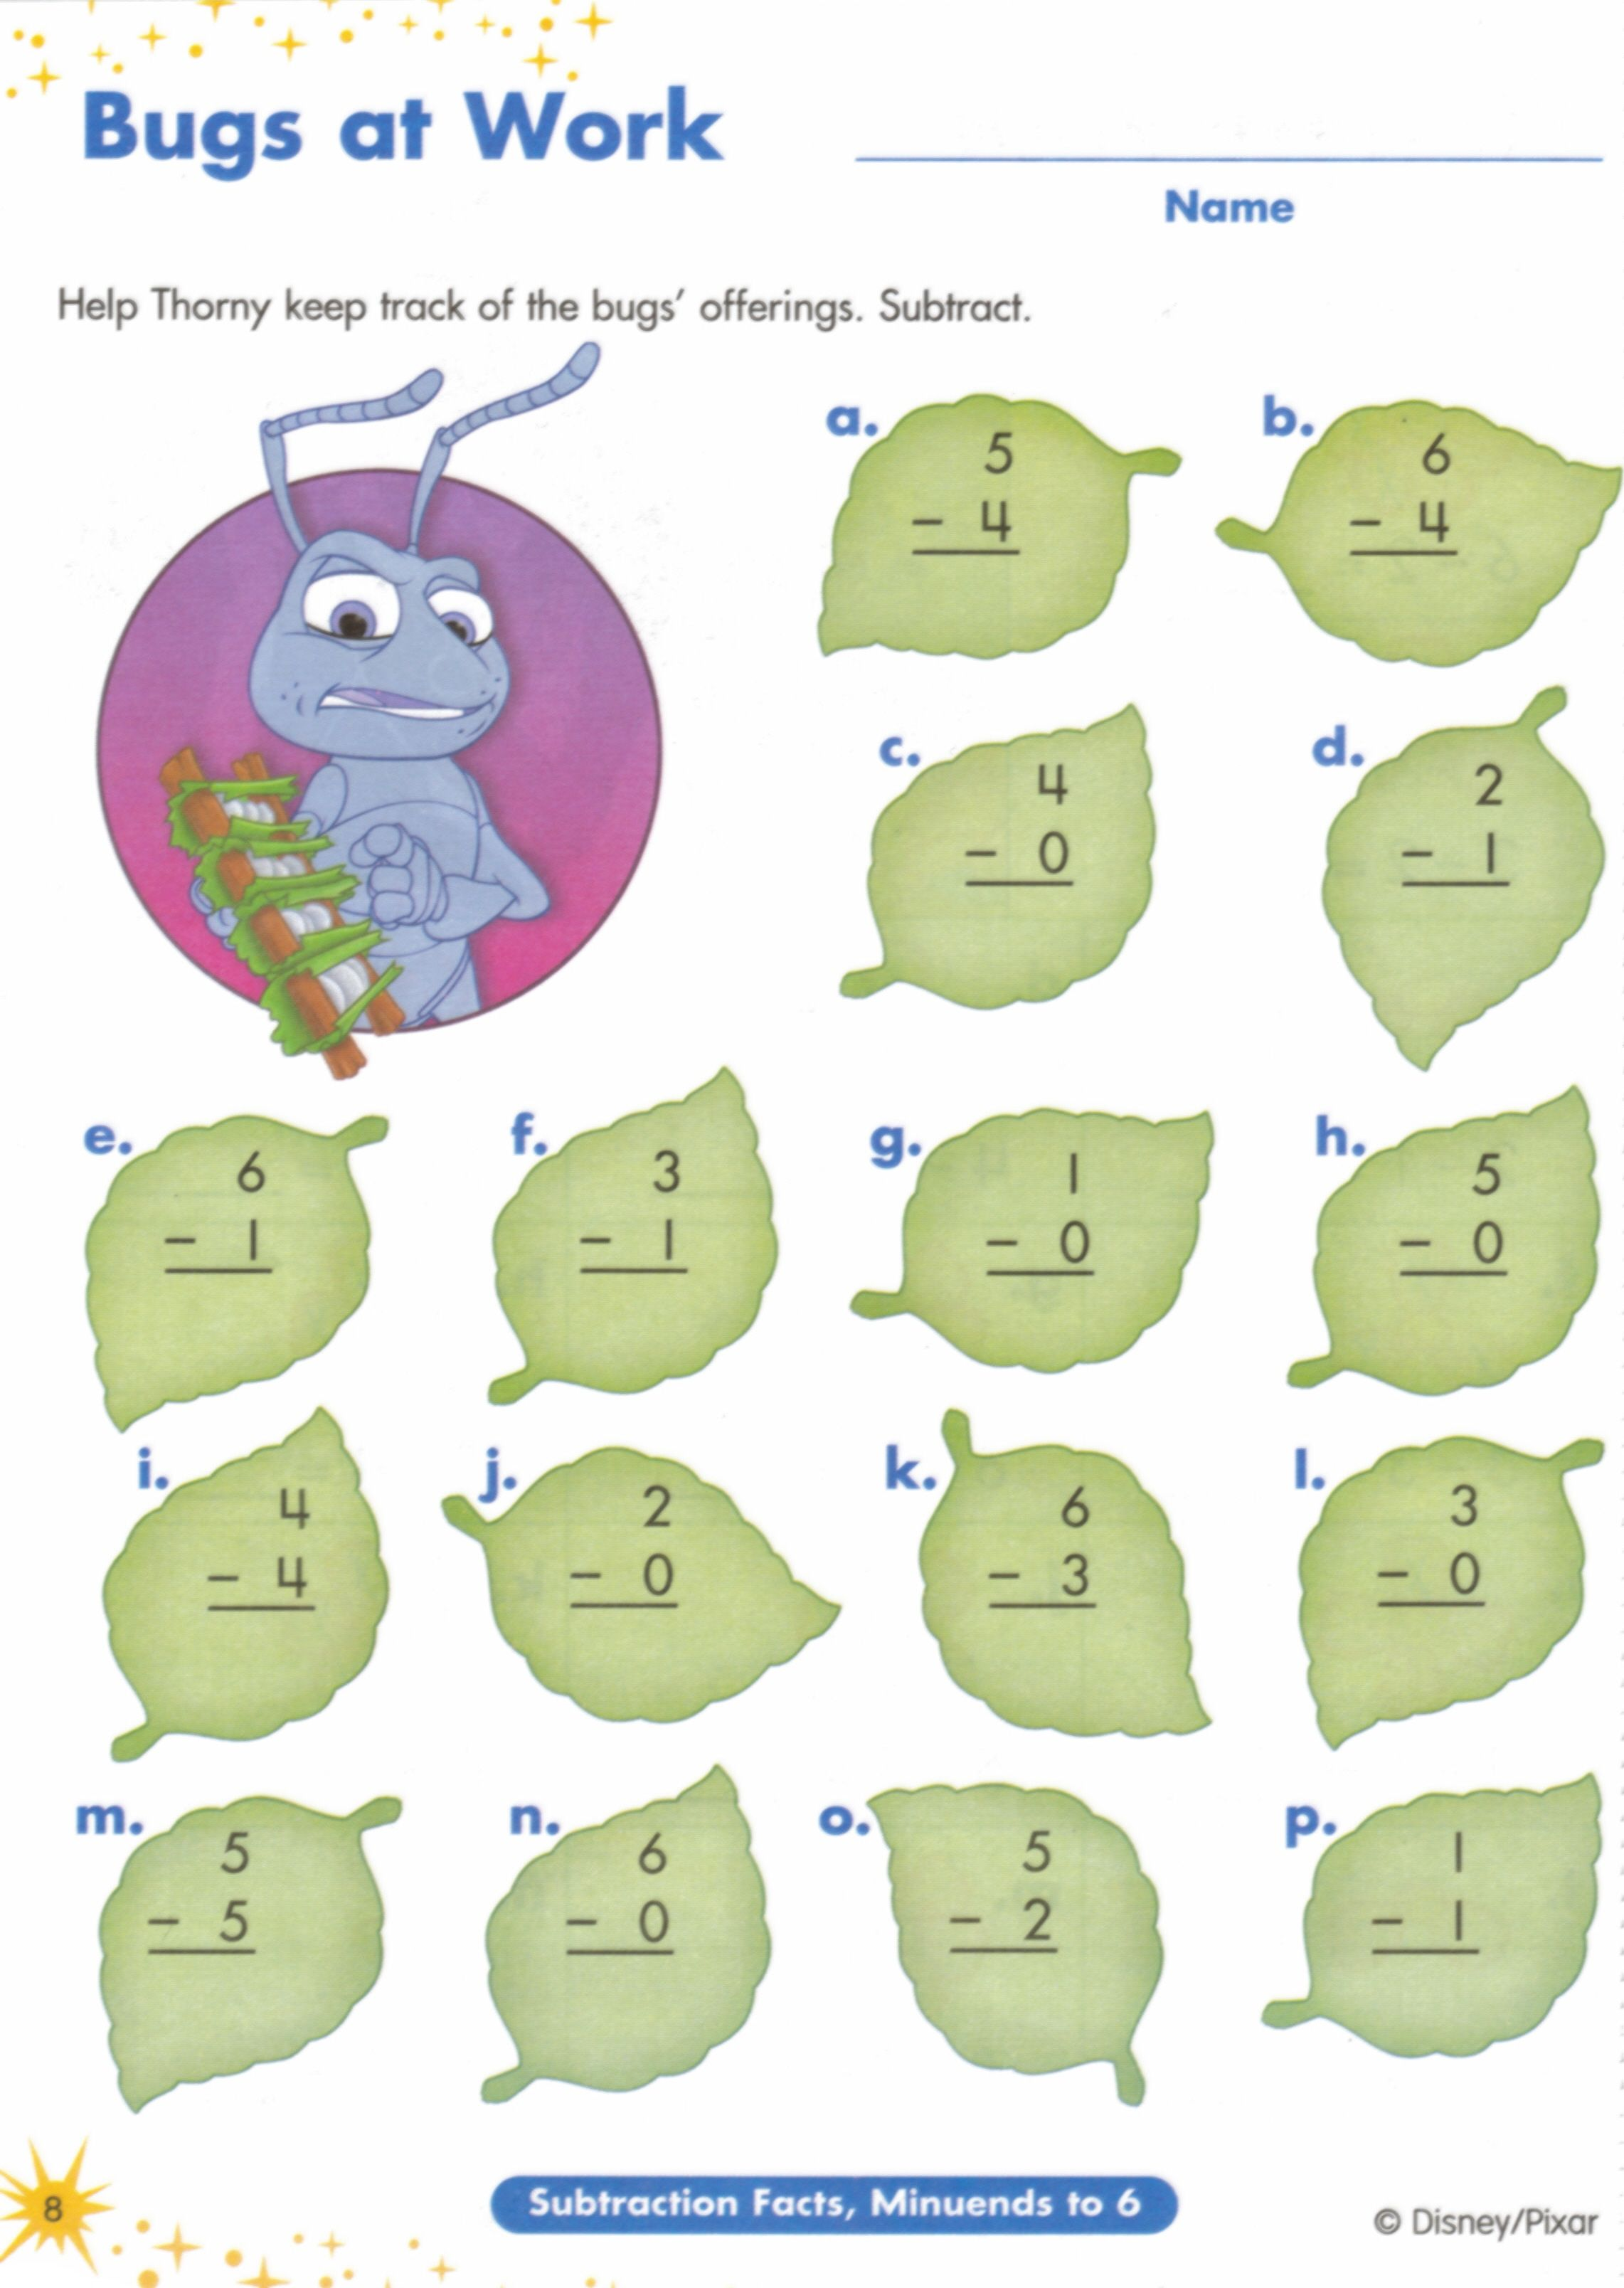 Proatmealus  Splendid  Images About Worksheets On Pinterest  Fun Facts For Kids  With Heavenly  Images About Worksheets On Pinterest  Fun Facts For Kids Earth Day Worksheets And Jungles With Beauteous Tic Tac Toe Worksheets Also Split Excel Worksheet In Addition Chemistry Worksheet On Naming And Writing Compounds And Webquest Worksheet As Well As Blank Map Of Europe Worksheet Additionally Propaganda Worksheets Middle School From Pinterestcom With Proatmealus  Heavenly  Images About Worksheets On Pinterest  Fun Facts For Kids  With Beauteous  Images About Worksheets On Pinterest  Fun Facts For Kids Earth Day Worksheets And Jungles And Splendid Tic Tac Toe Worksheets Also Split Excel Worksheet In Addition Chemistry Worksheet On Naming And Writing Compounds From Pinterestcom